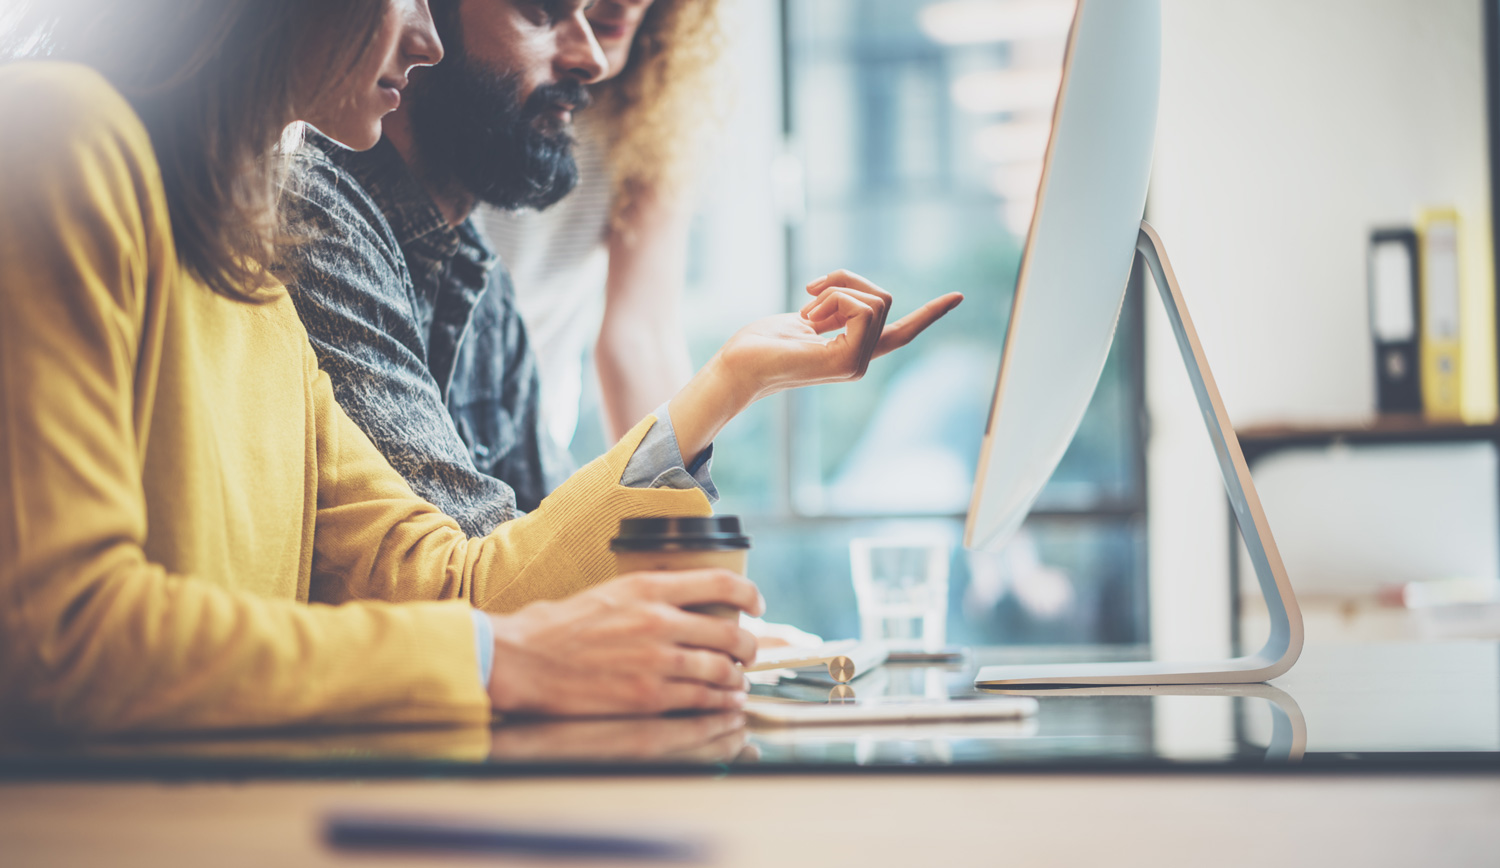 In-demand digital skills   Designed to support small businesses and up skill individuals who are seeking employment or looking to improve their job prospects   START LEARNING